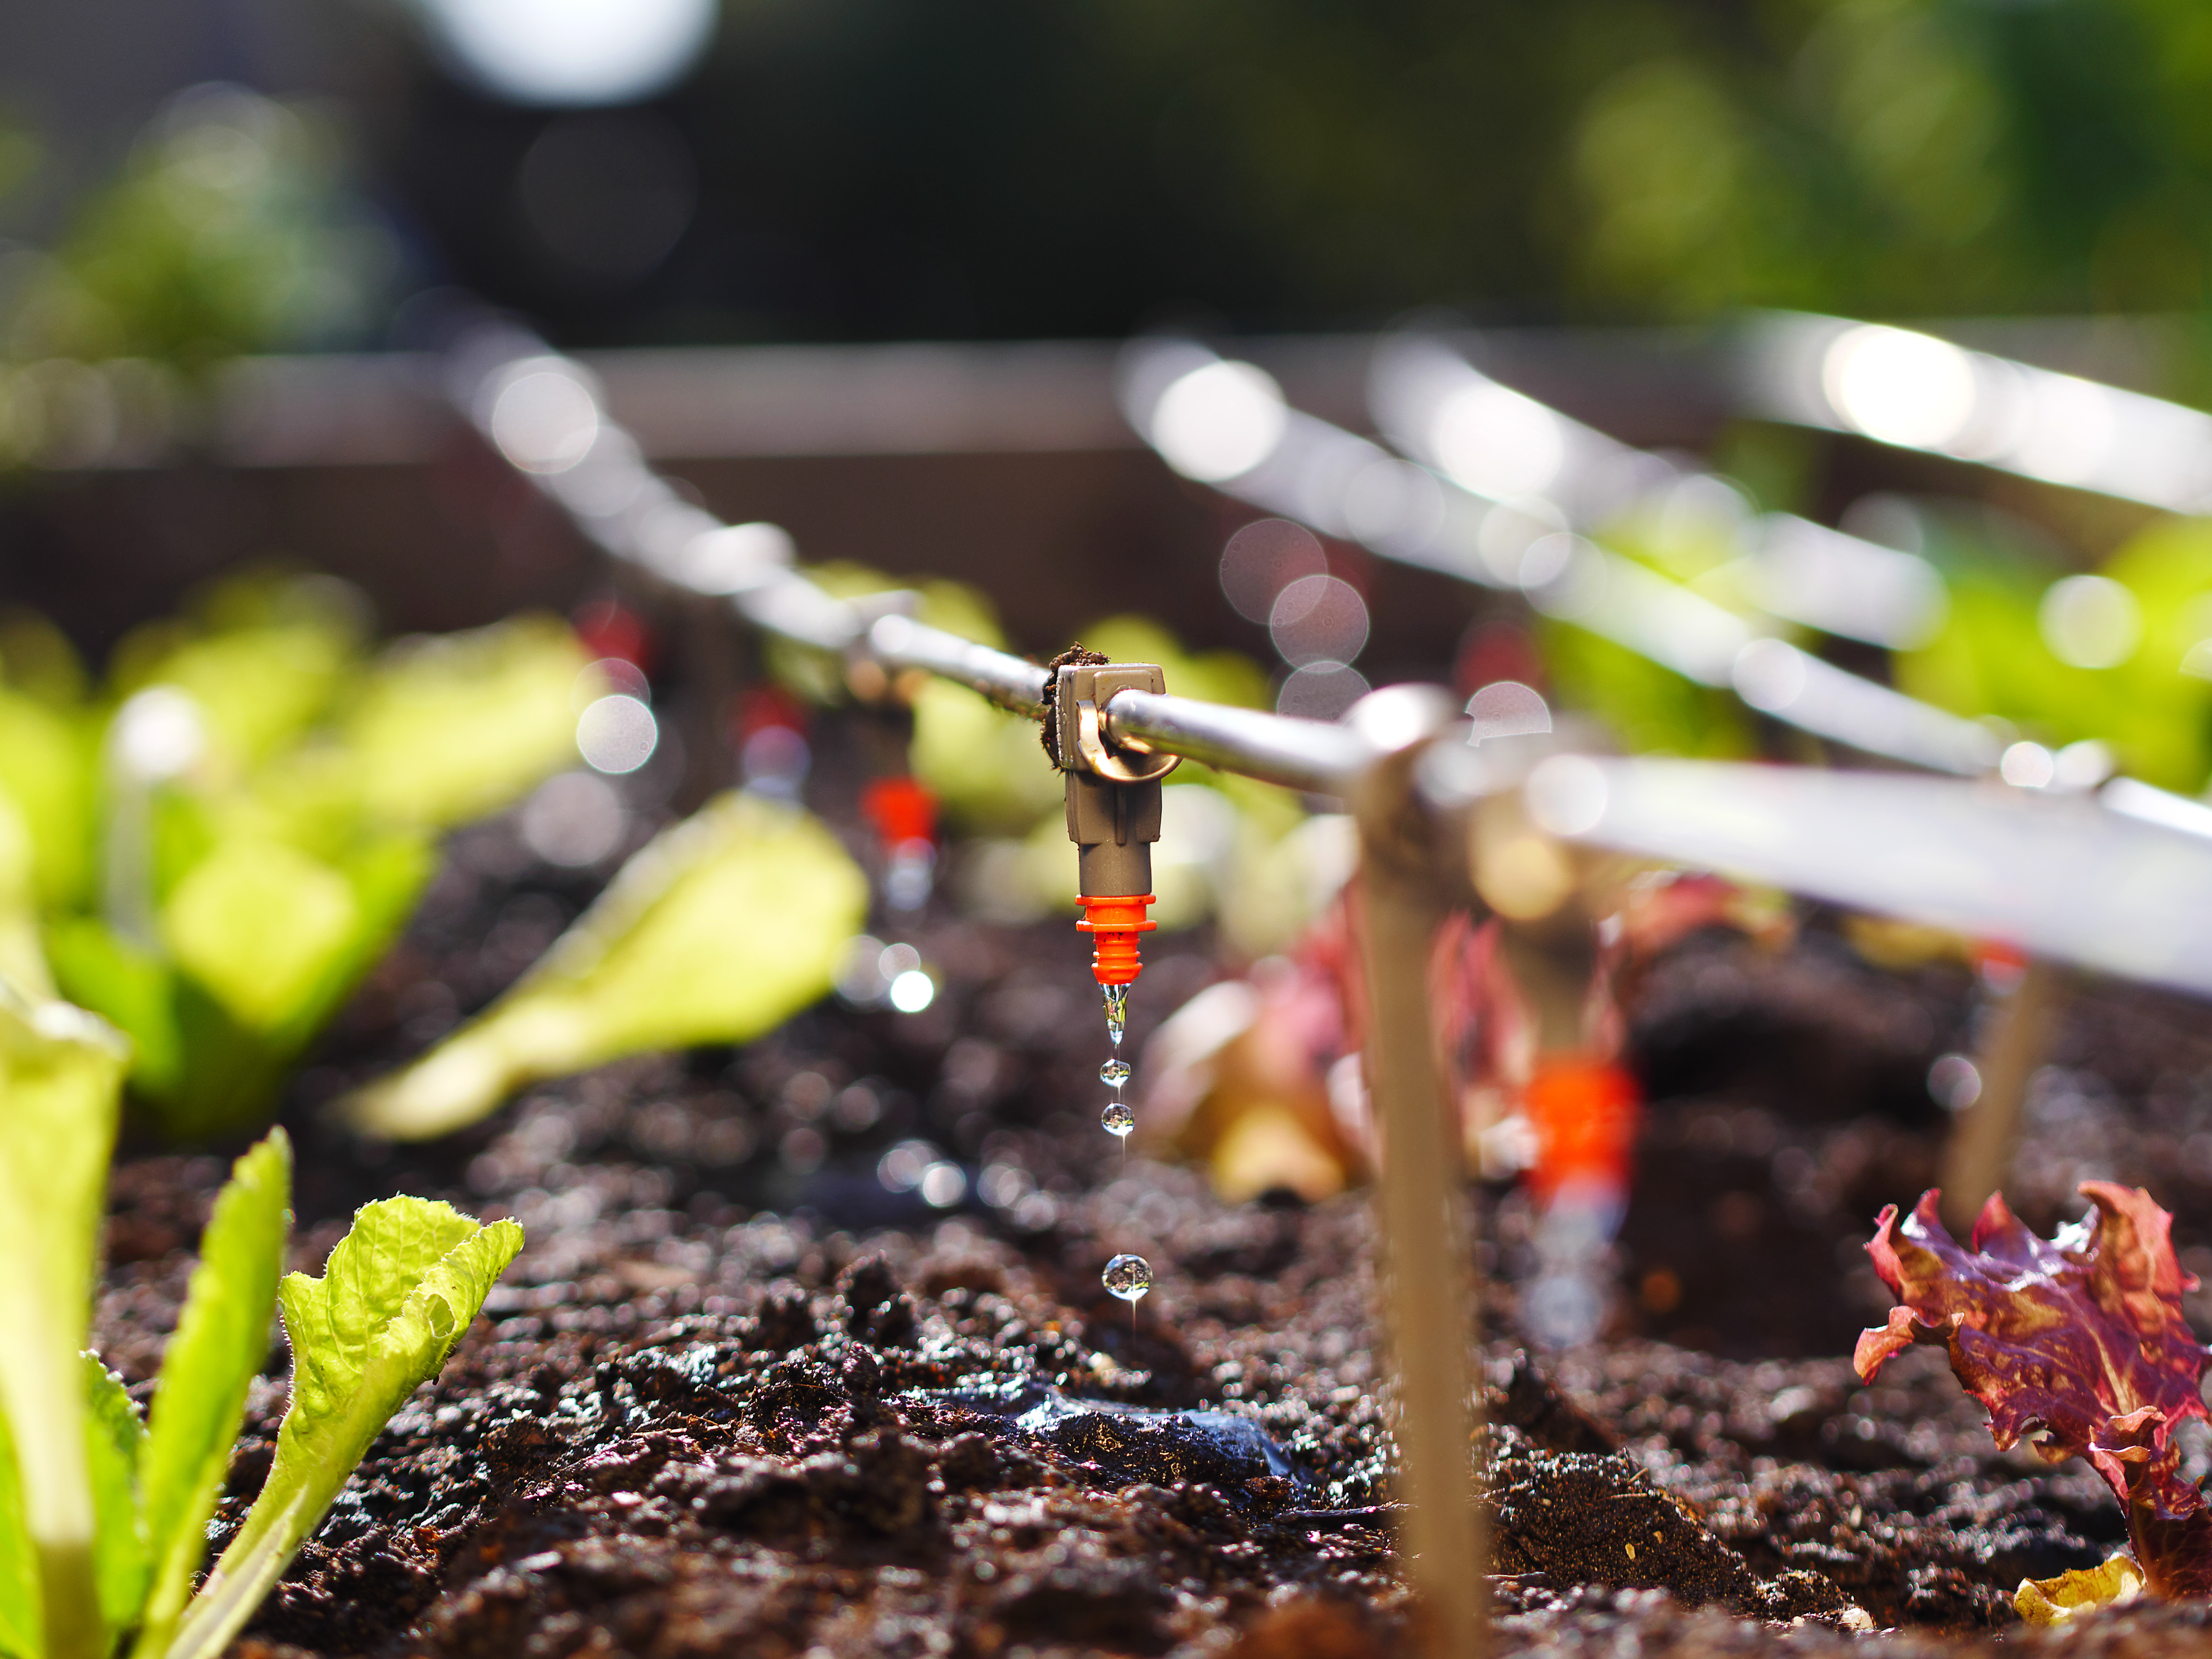 Automatic drip irrigation at a soil-based farm